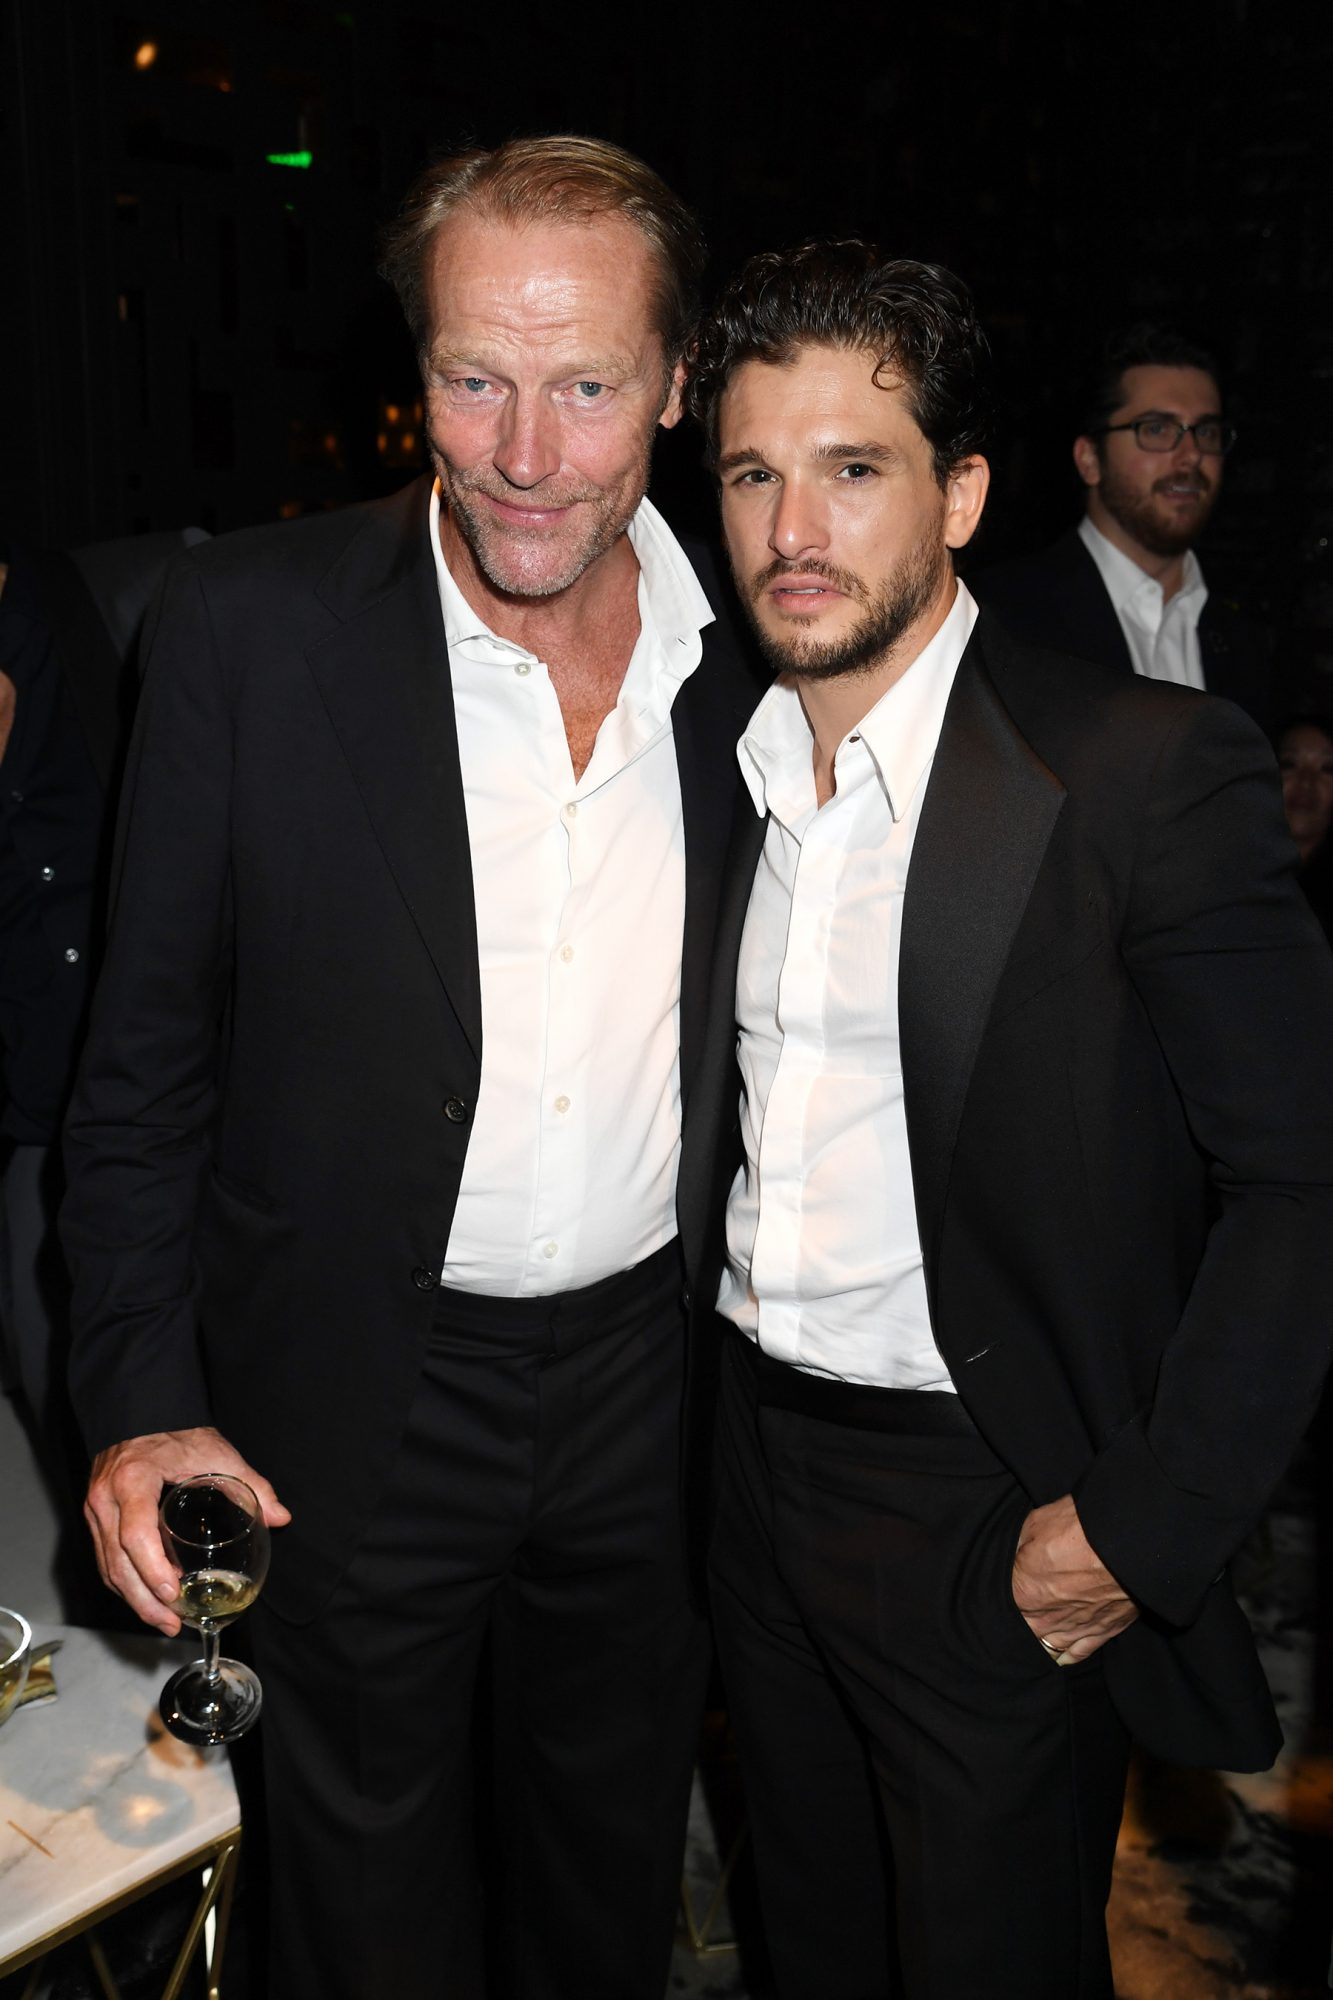 Iain Glen and Kit Harington